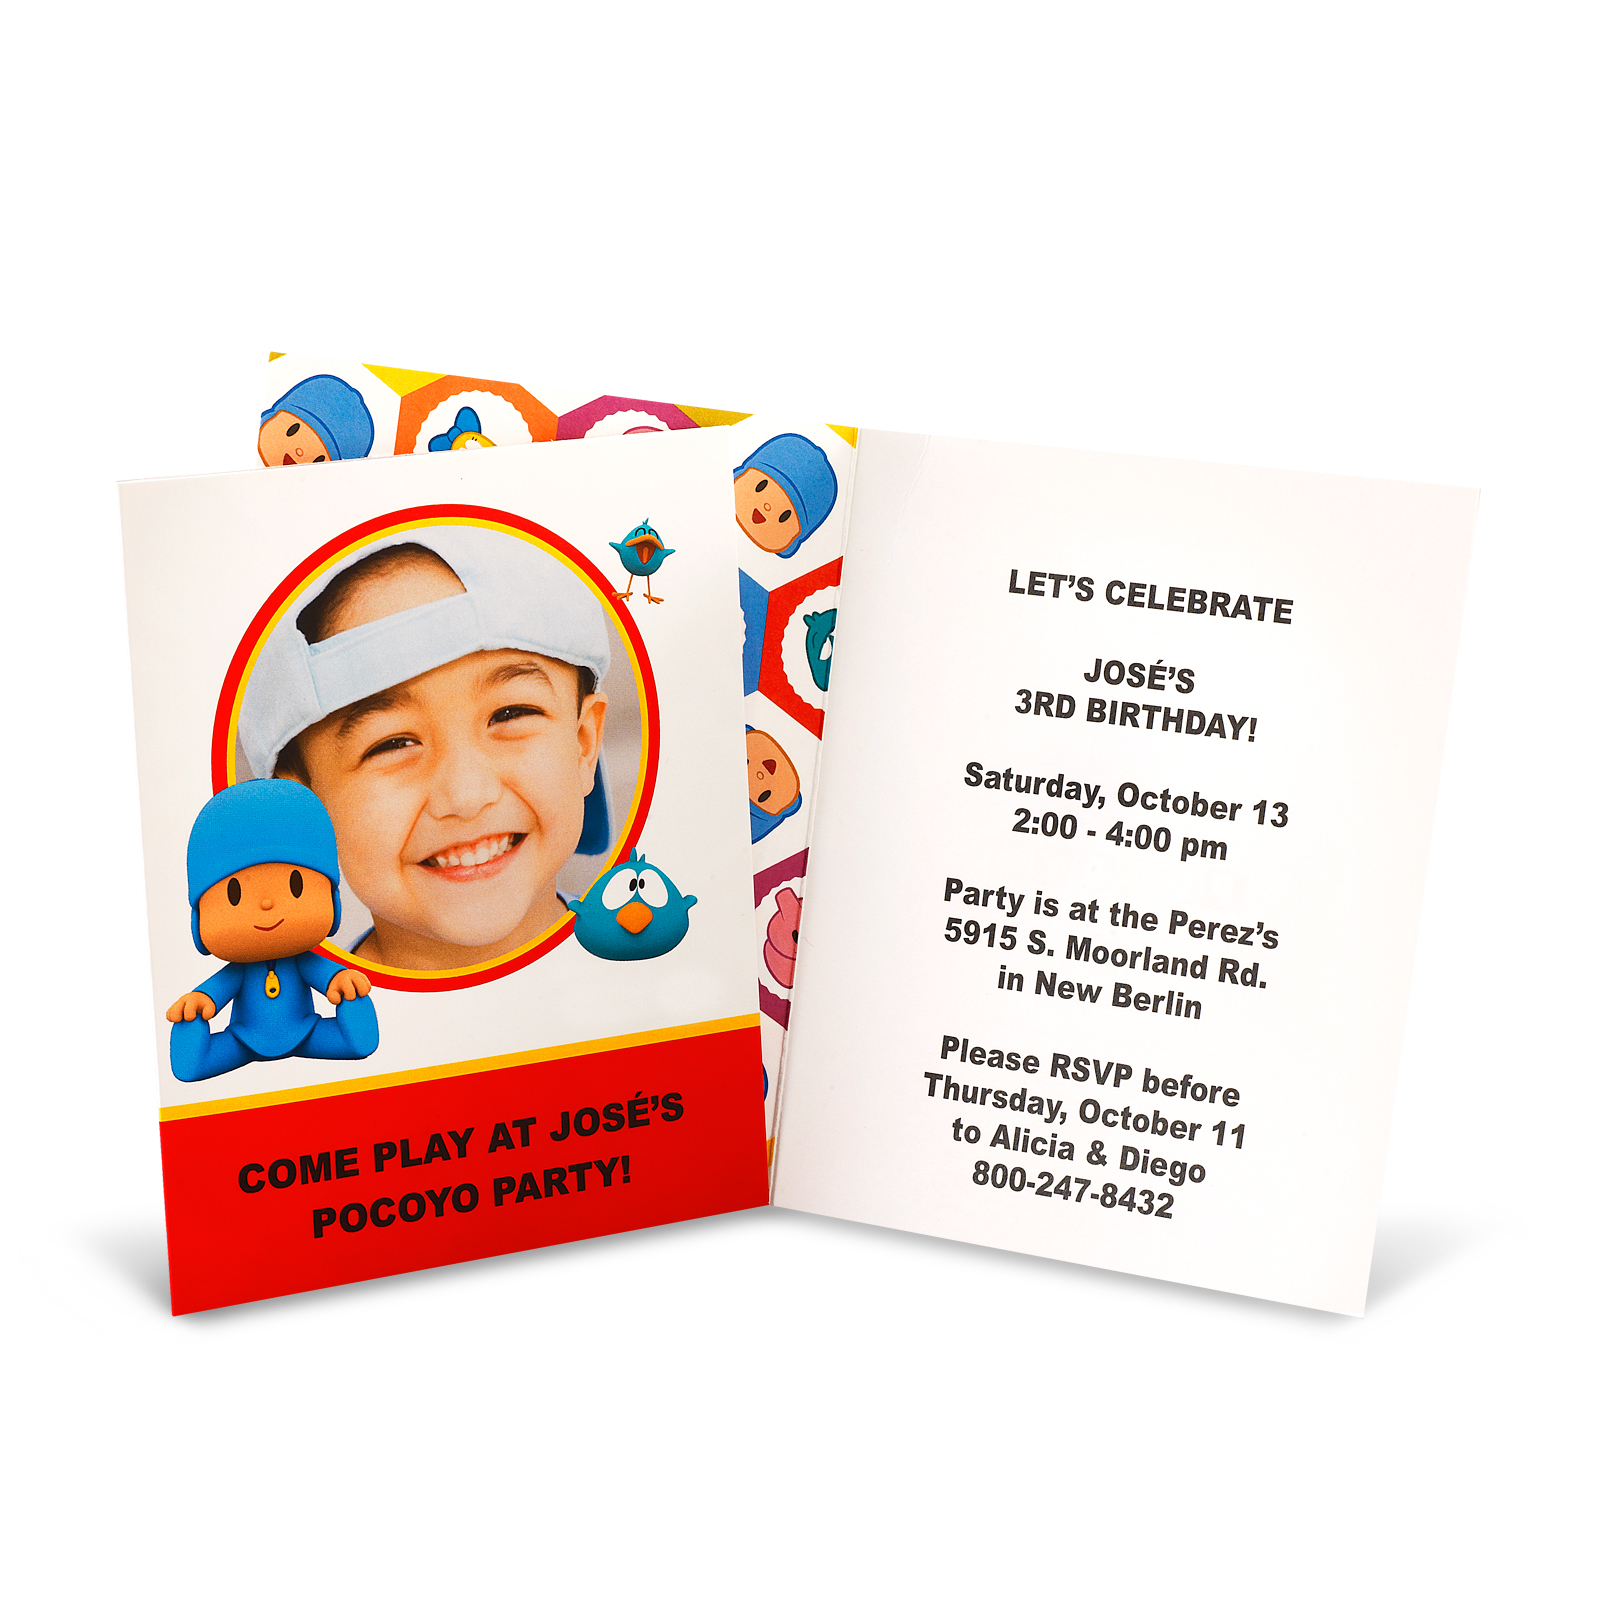 Pocoyo Party - Party City Hours